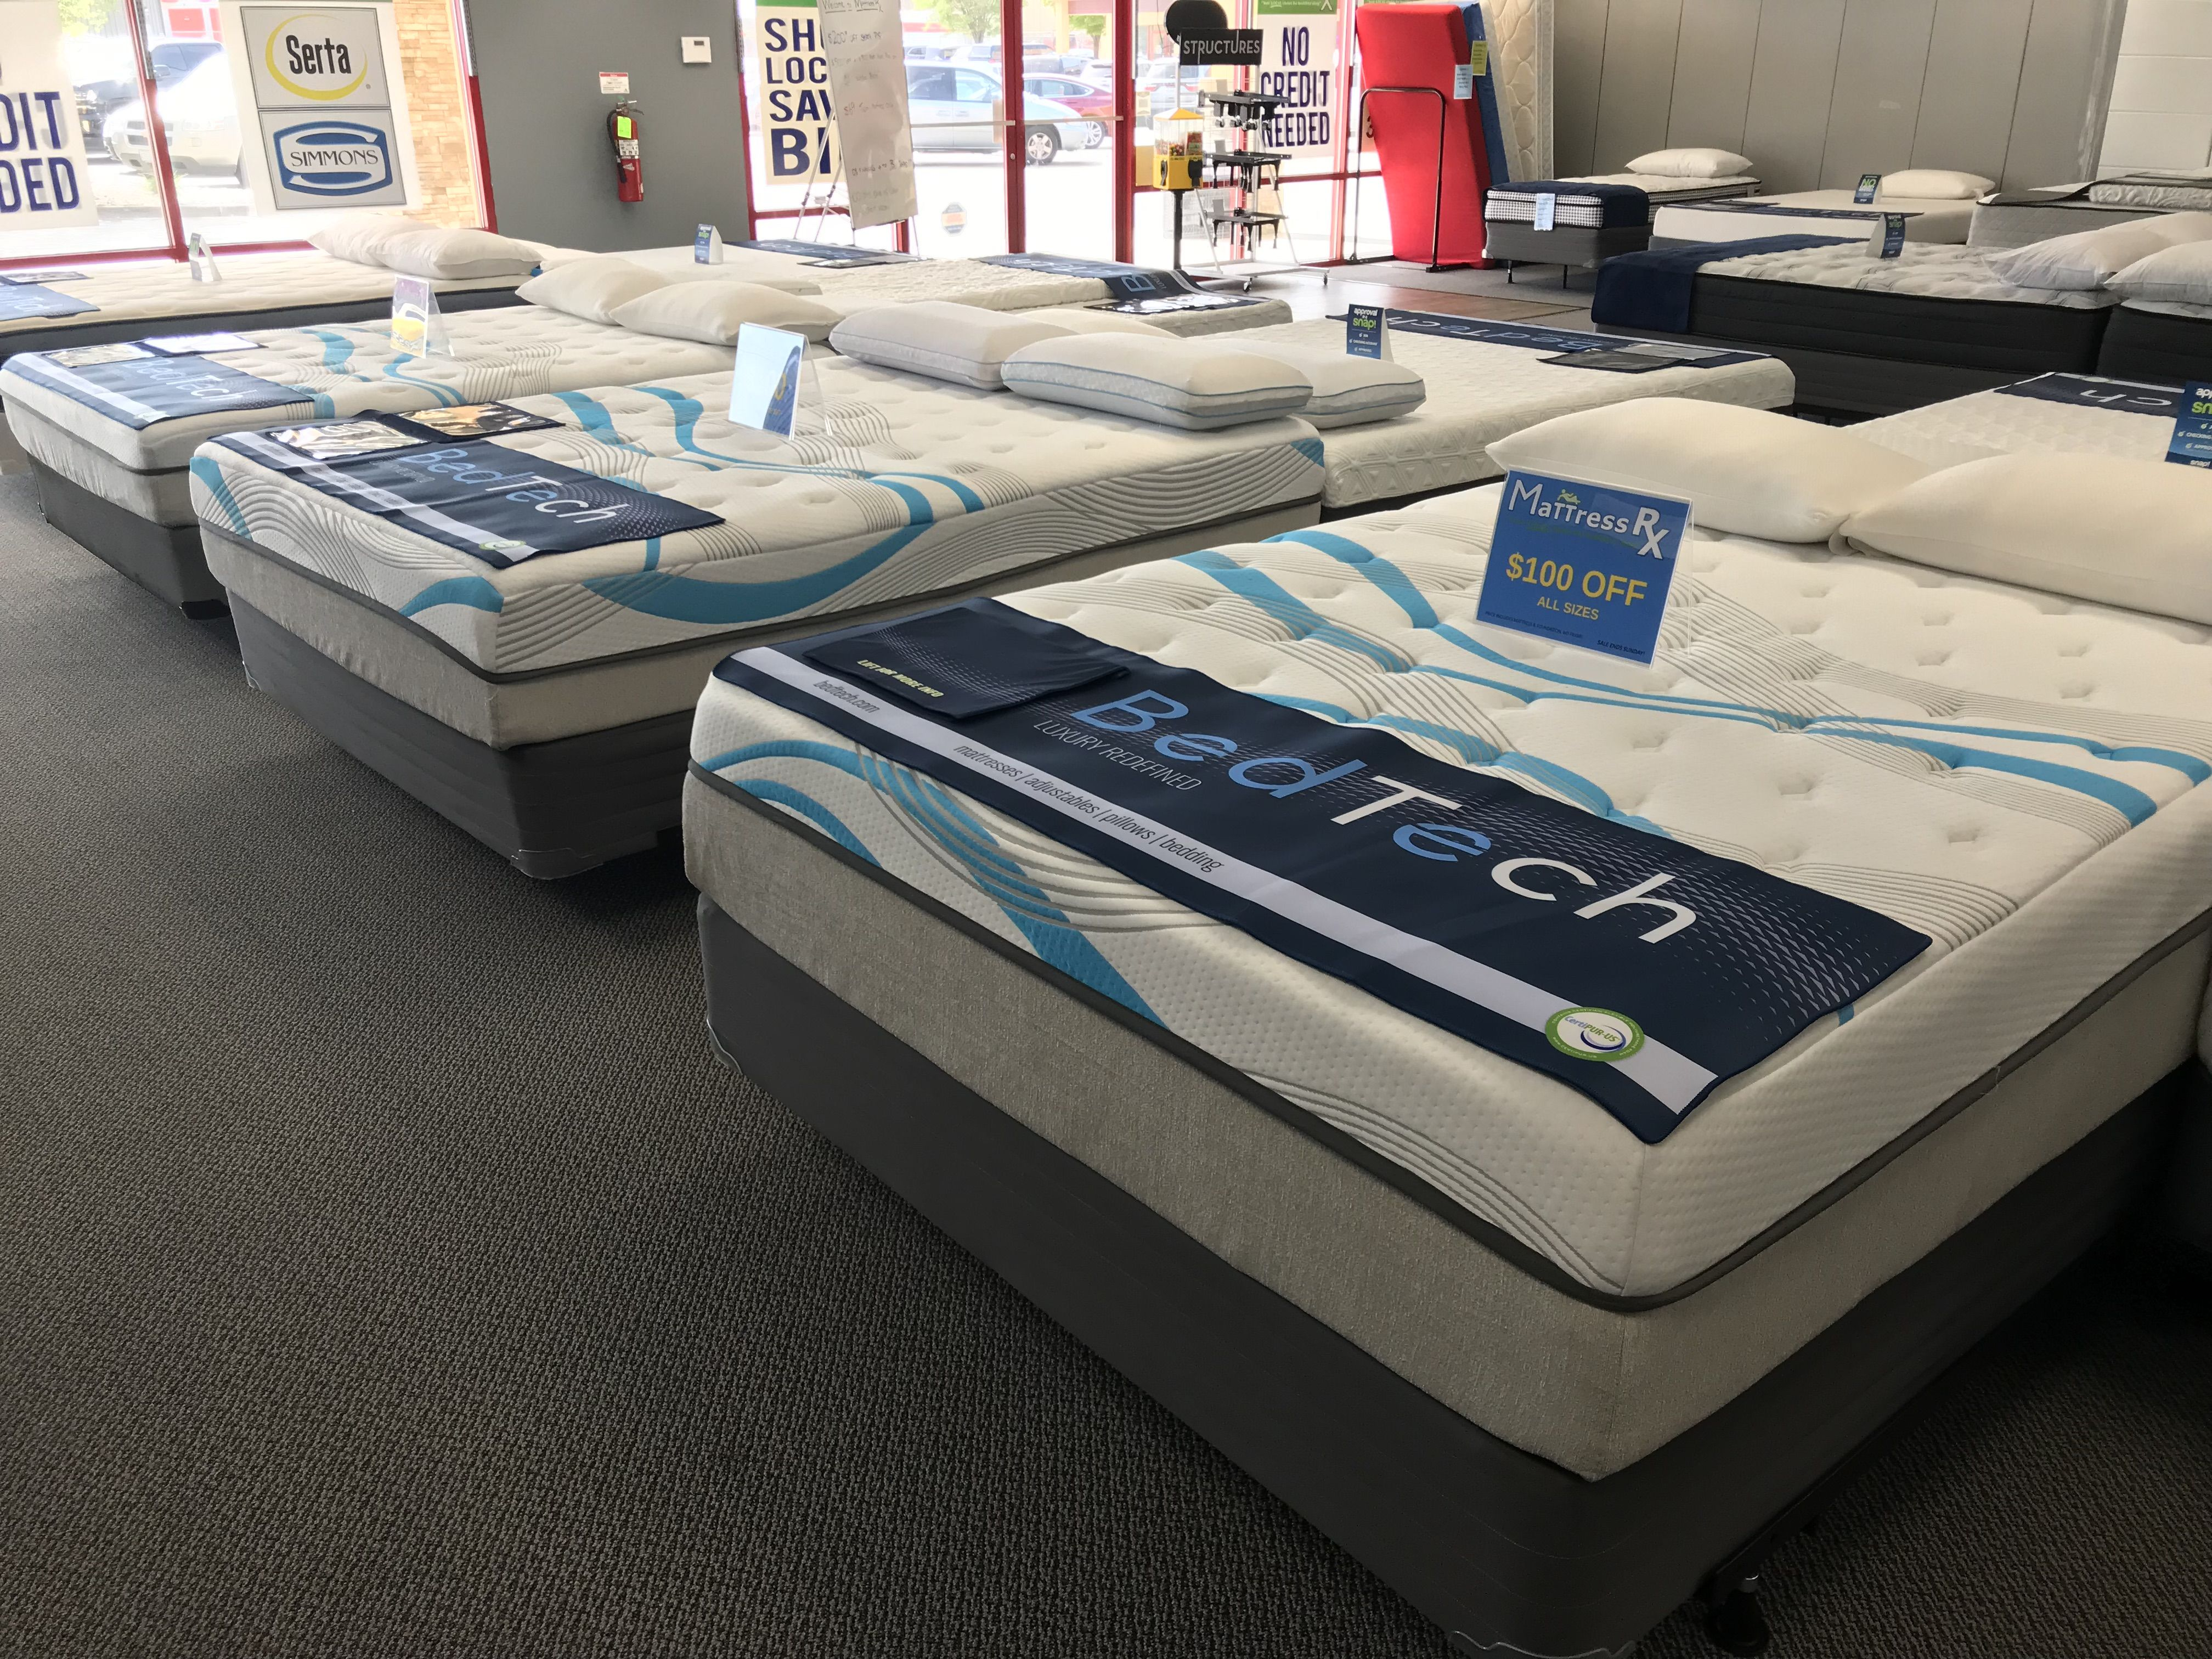 With Over 56 5 Star Reviews In The Last 8 Months Primarily On These Models These Are Hands Down Our Best Sellers Mimickin Best Mattress Hybrid Mattress Best